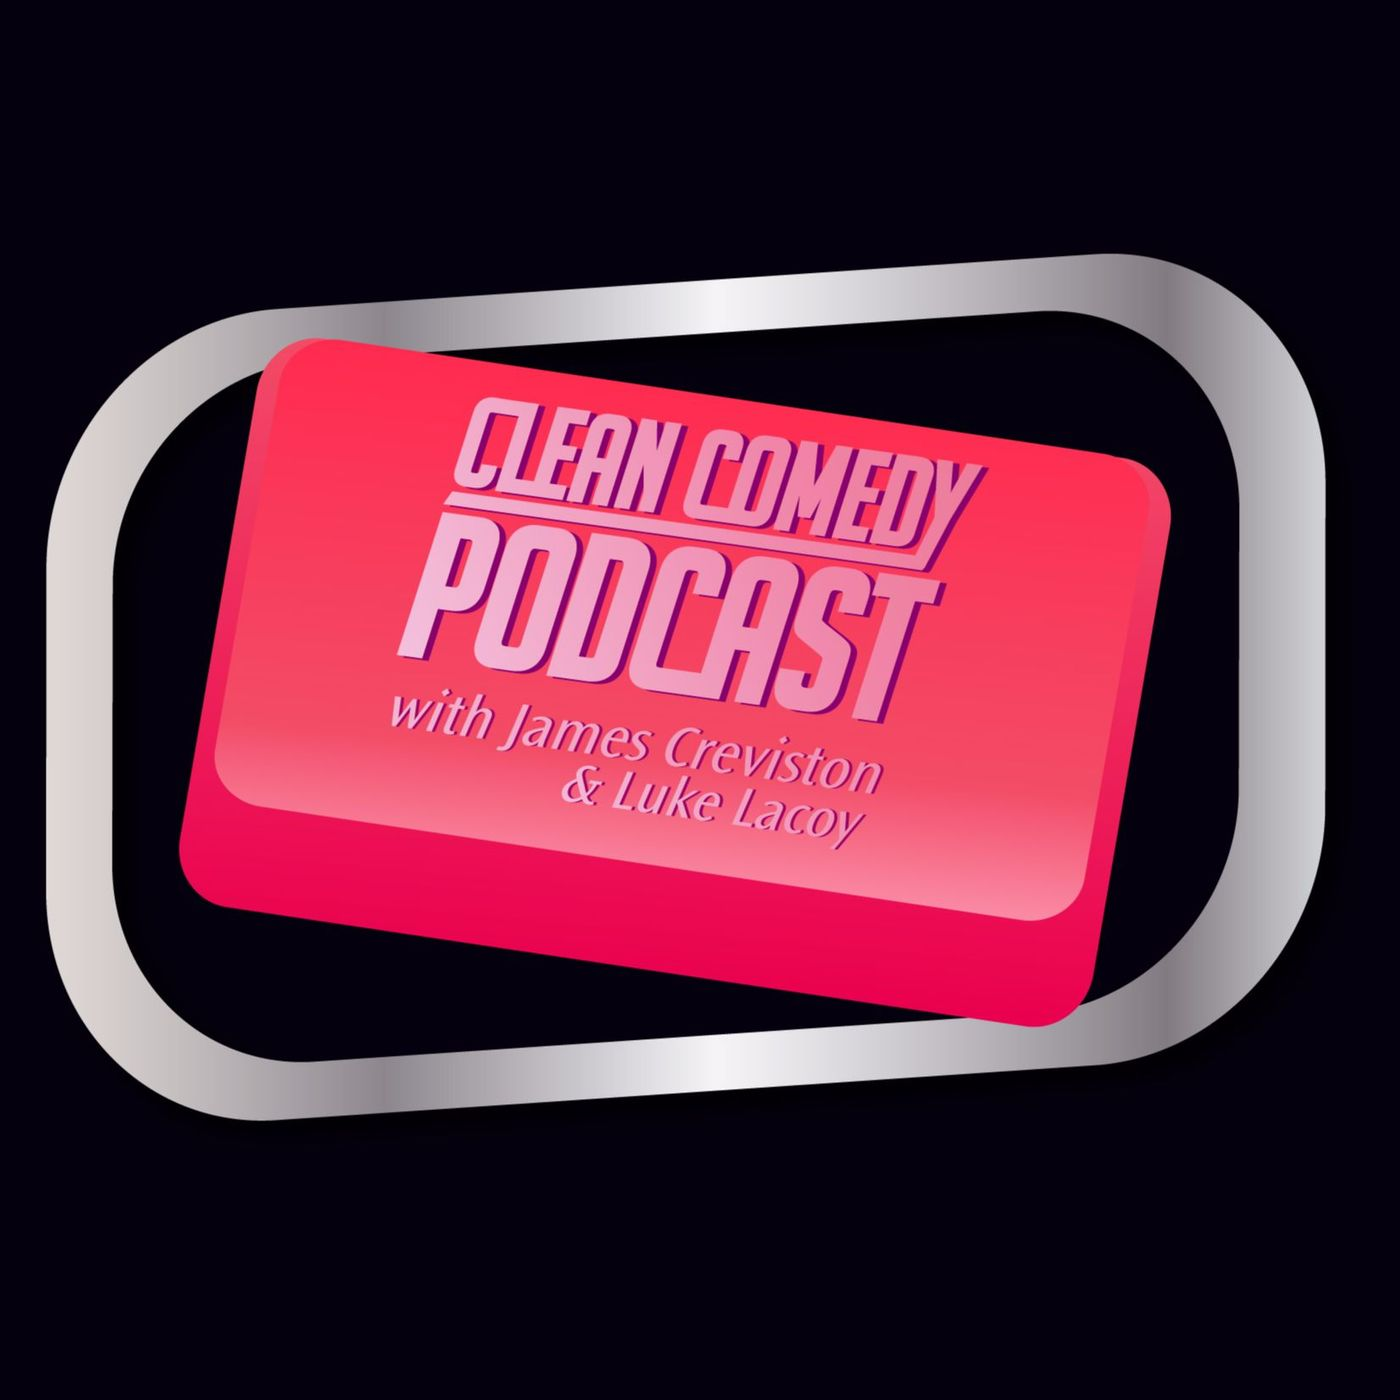 The Clean Comedy Podcast podcast